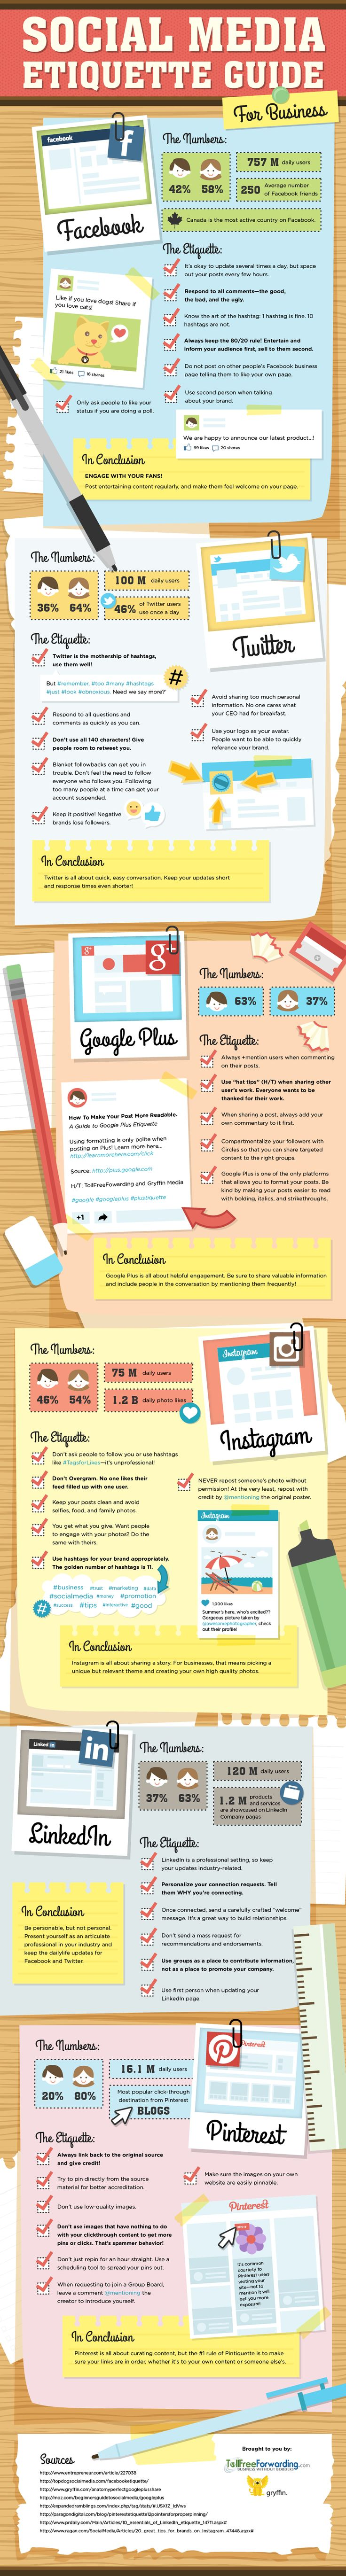 A Visual Guide to Social Media Etiquette #vulibstud2014